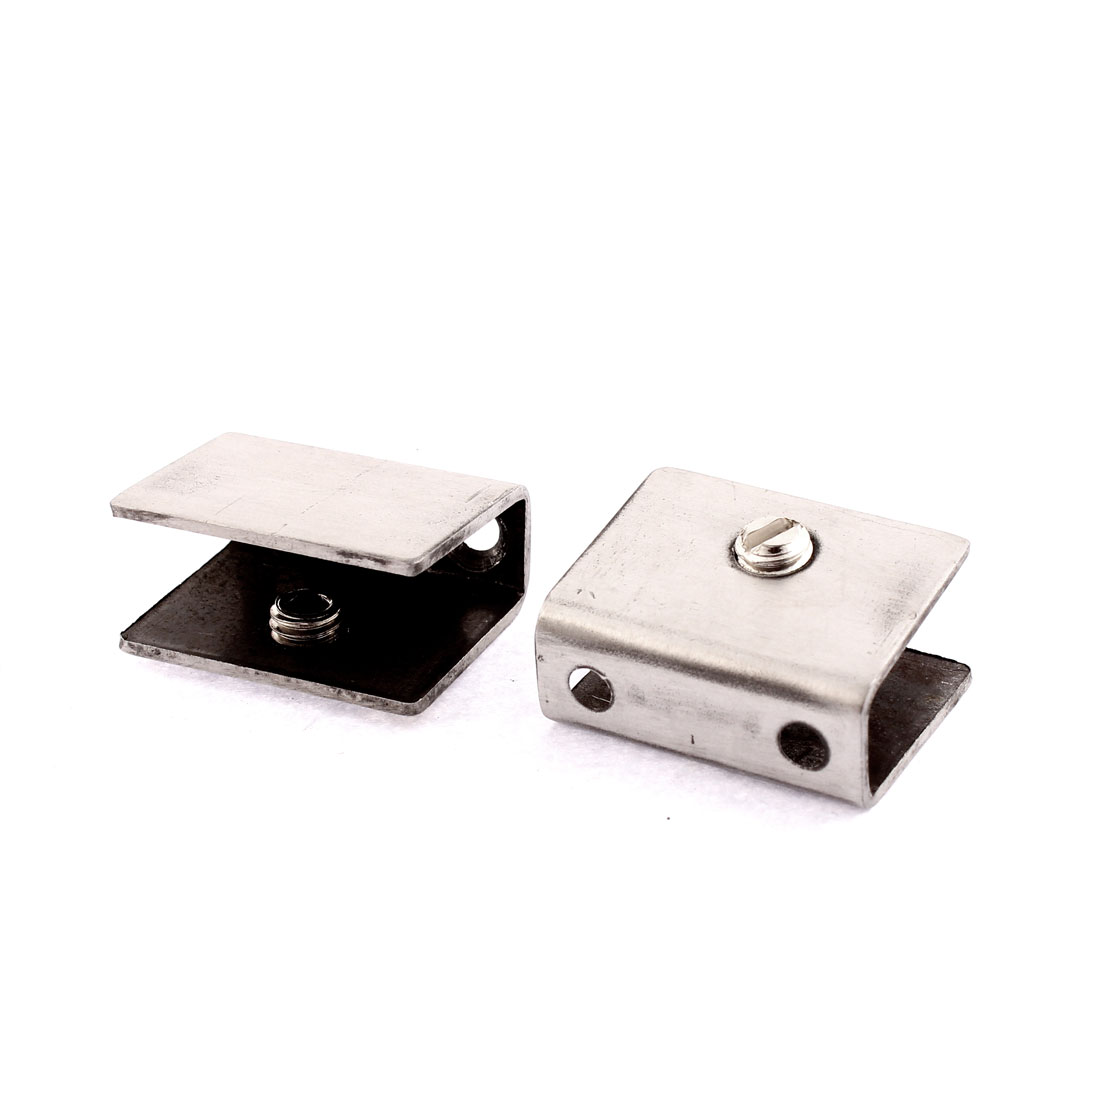 2 Pcs 10mm-12mm Thickness Adjustable Stainless Steel Glass Clip Clamp Shelf